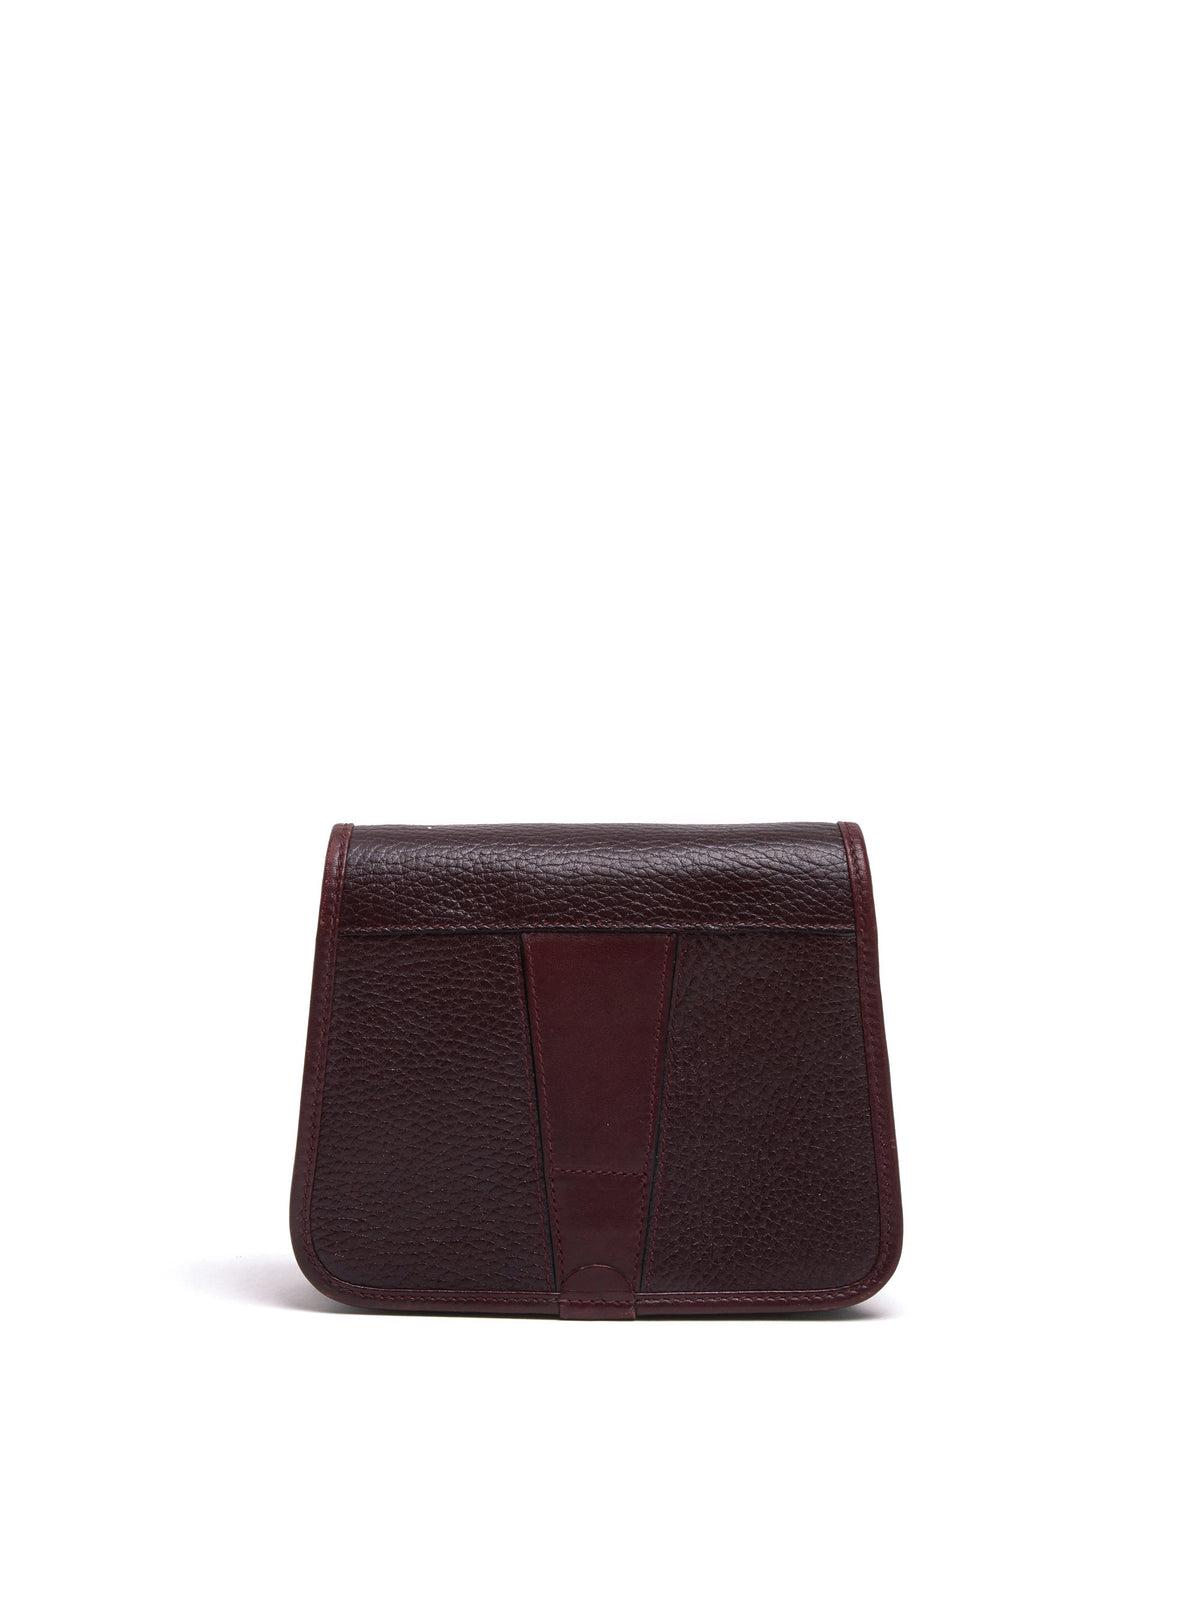 Mark Cross Vintage Mini Leather Crossbody Bag Burgundy Back